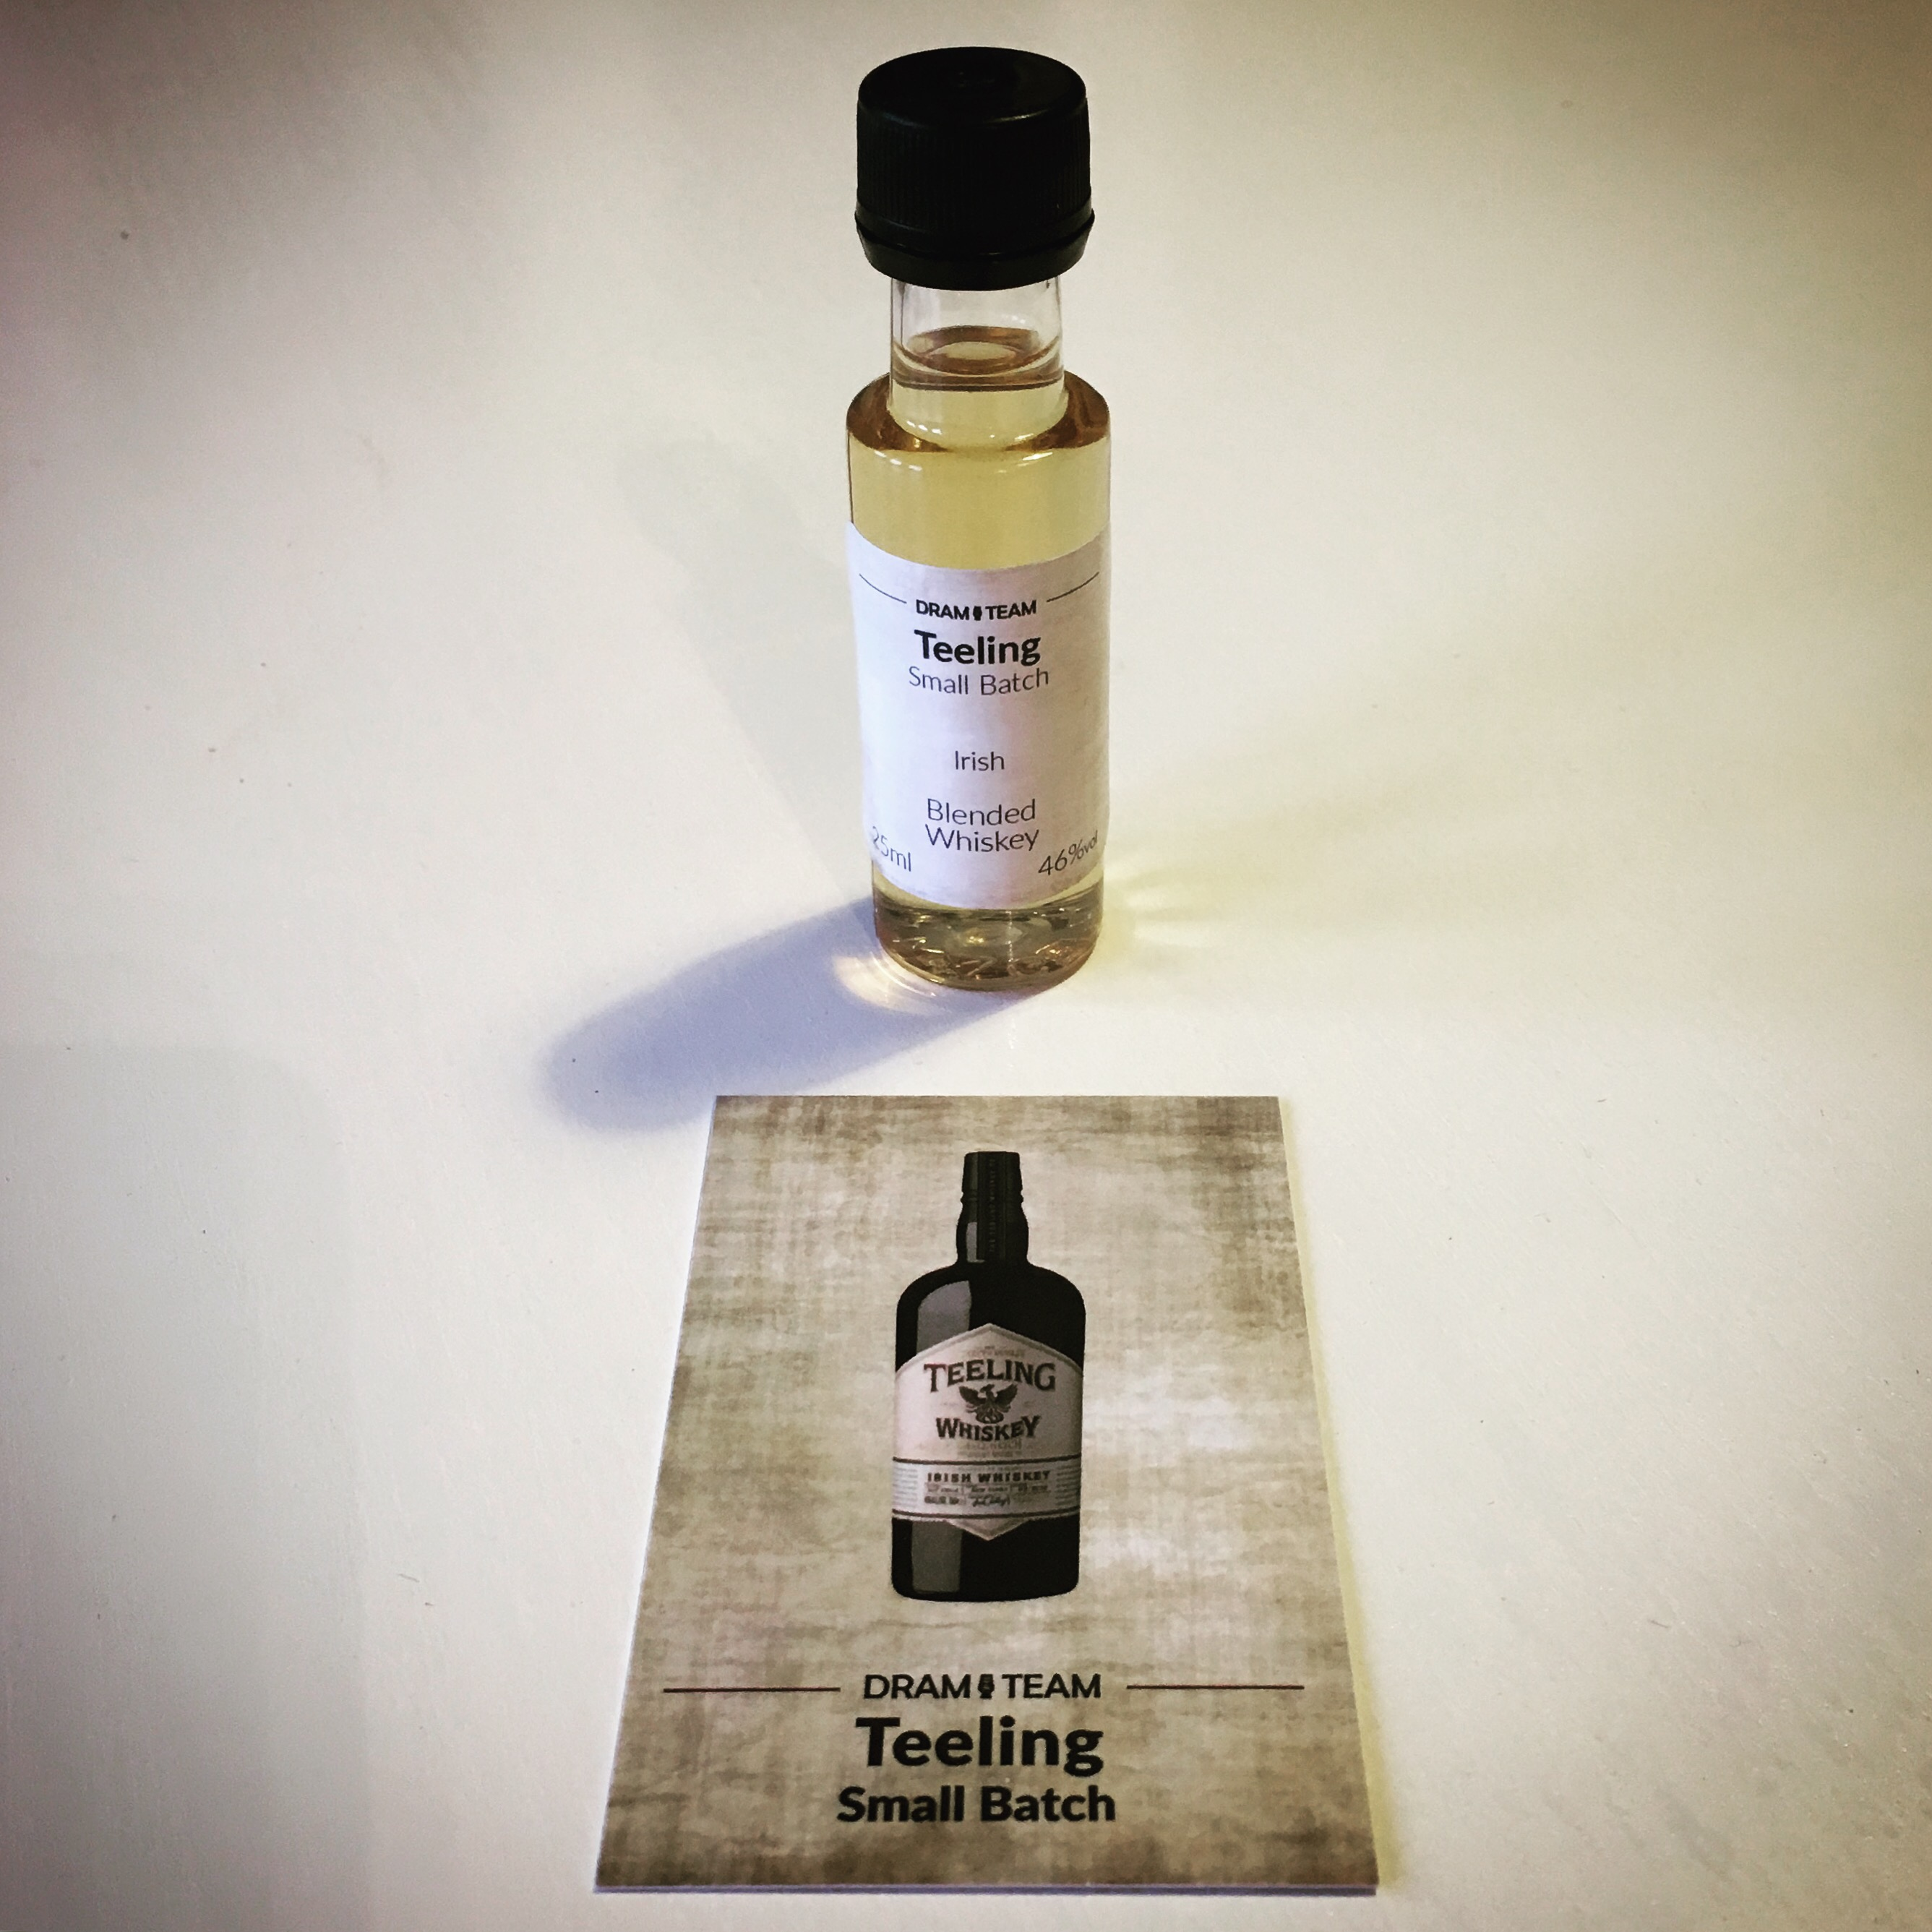 The Dram Team Monthly Subscription Box Whisky Reviews